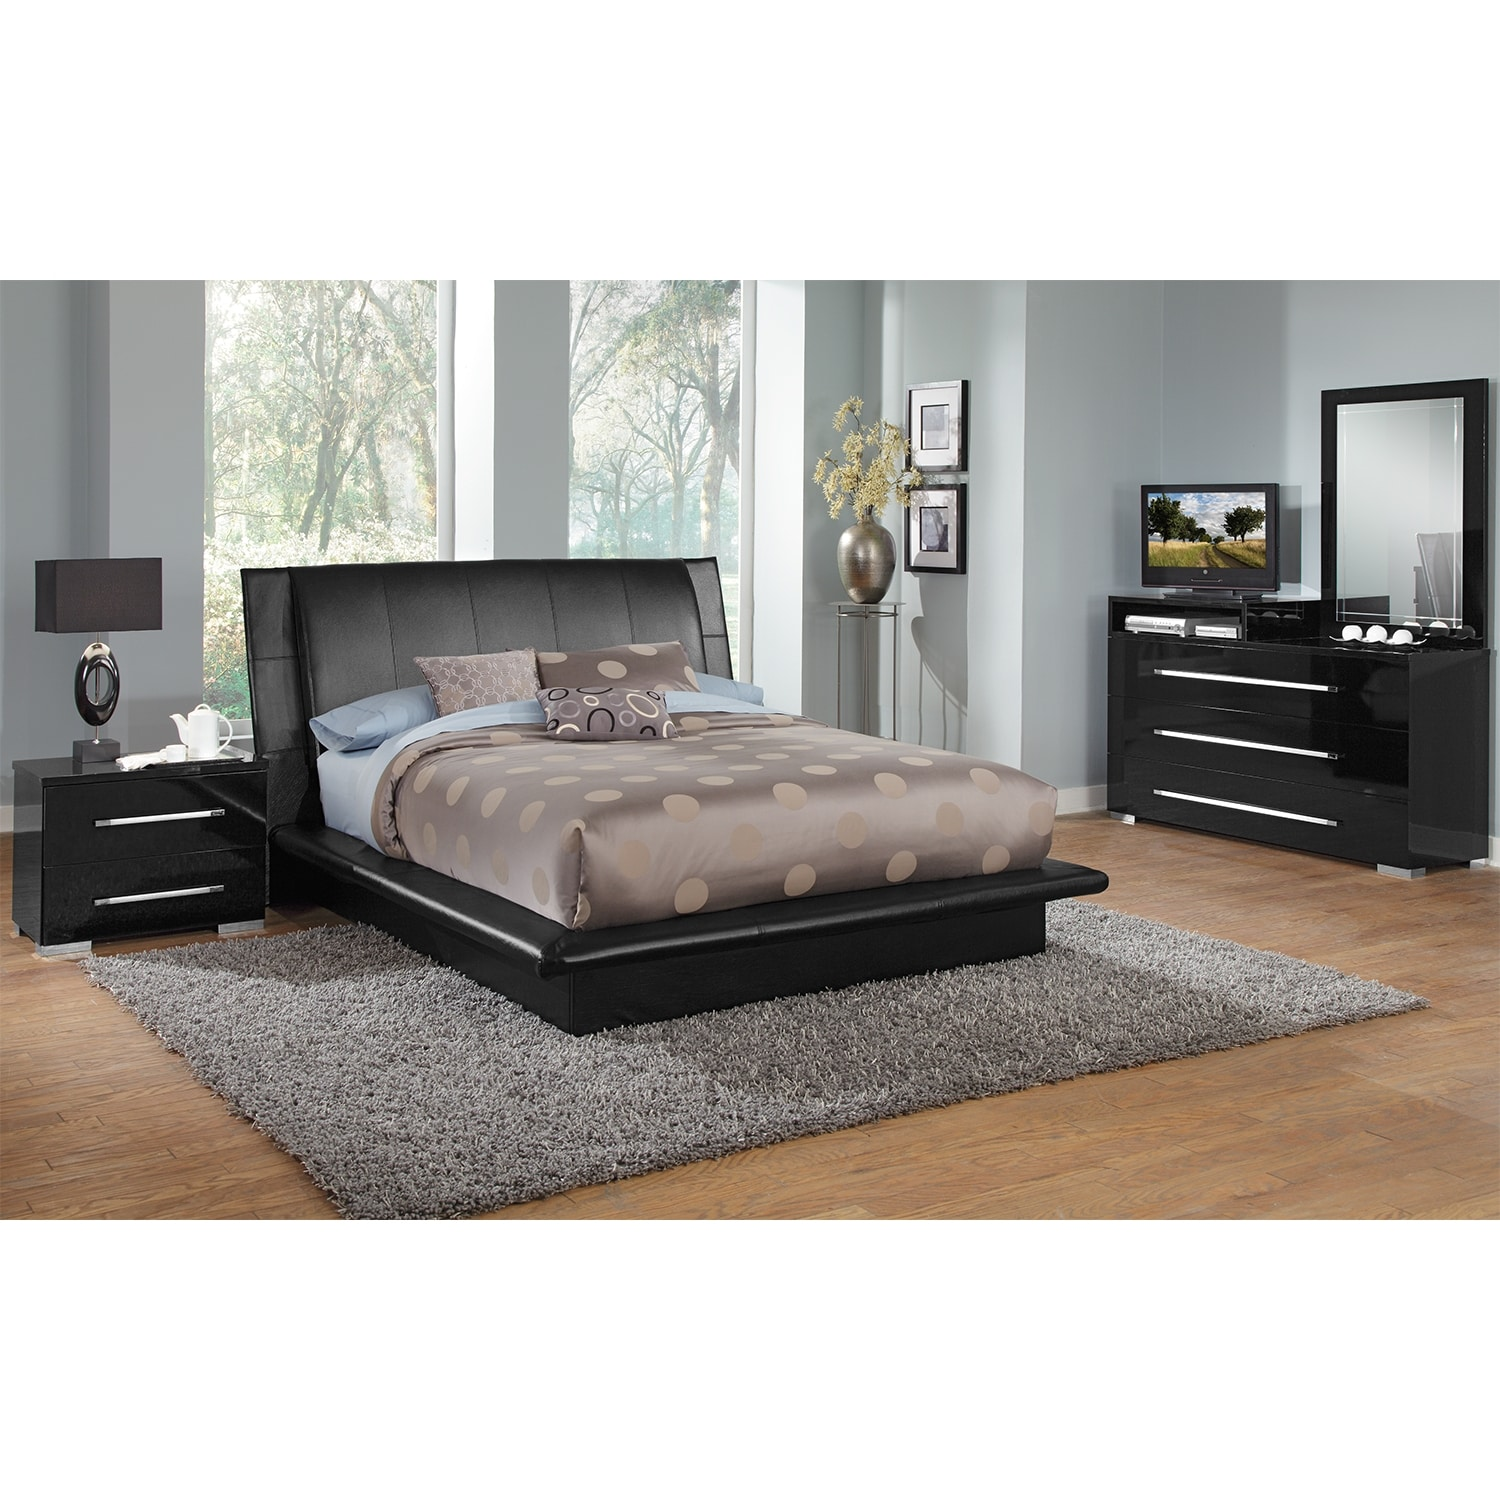 Dimora 6-Piece Queen Upholstered Bedroom Set with Media Dresser - Black